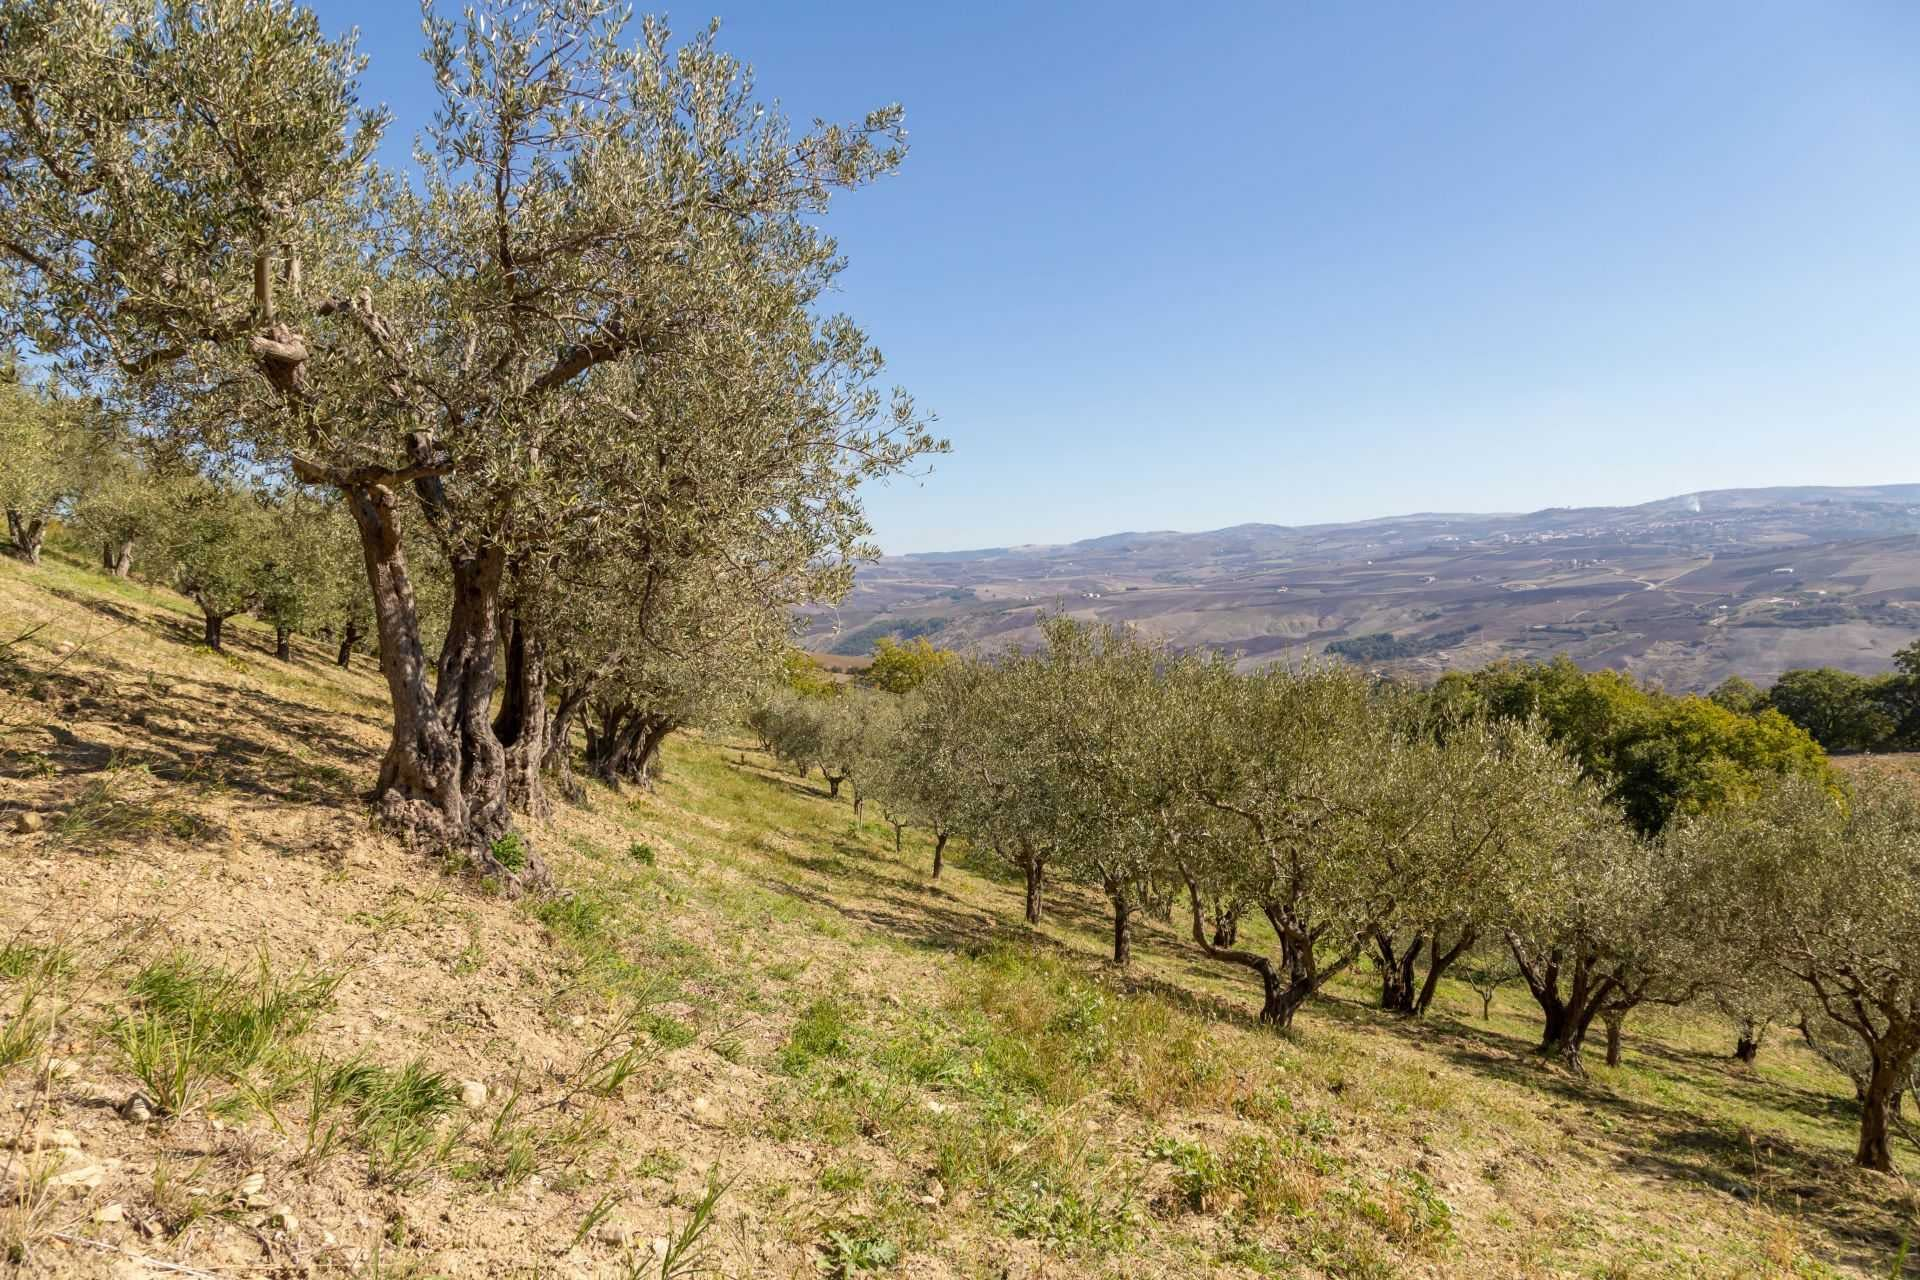 europe-competitions-the-best-olive-oils-southern-italian-producers-enjoy-another-strong-showing-at-world-competition-olive-oil-times